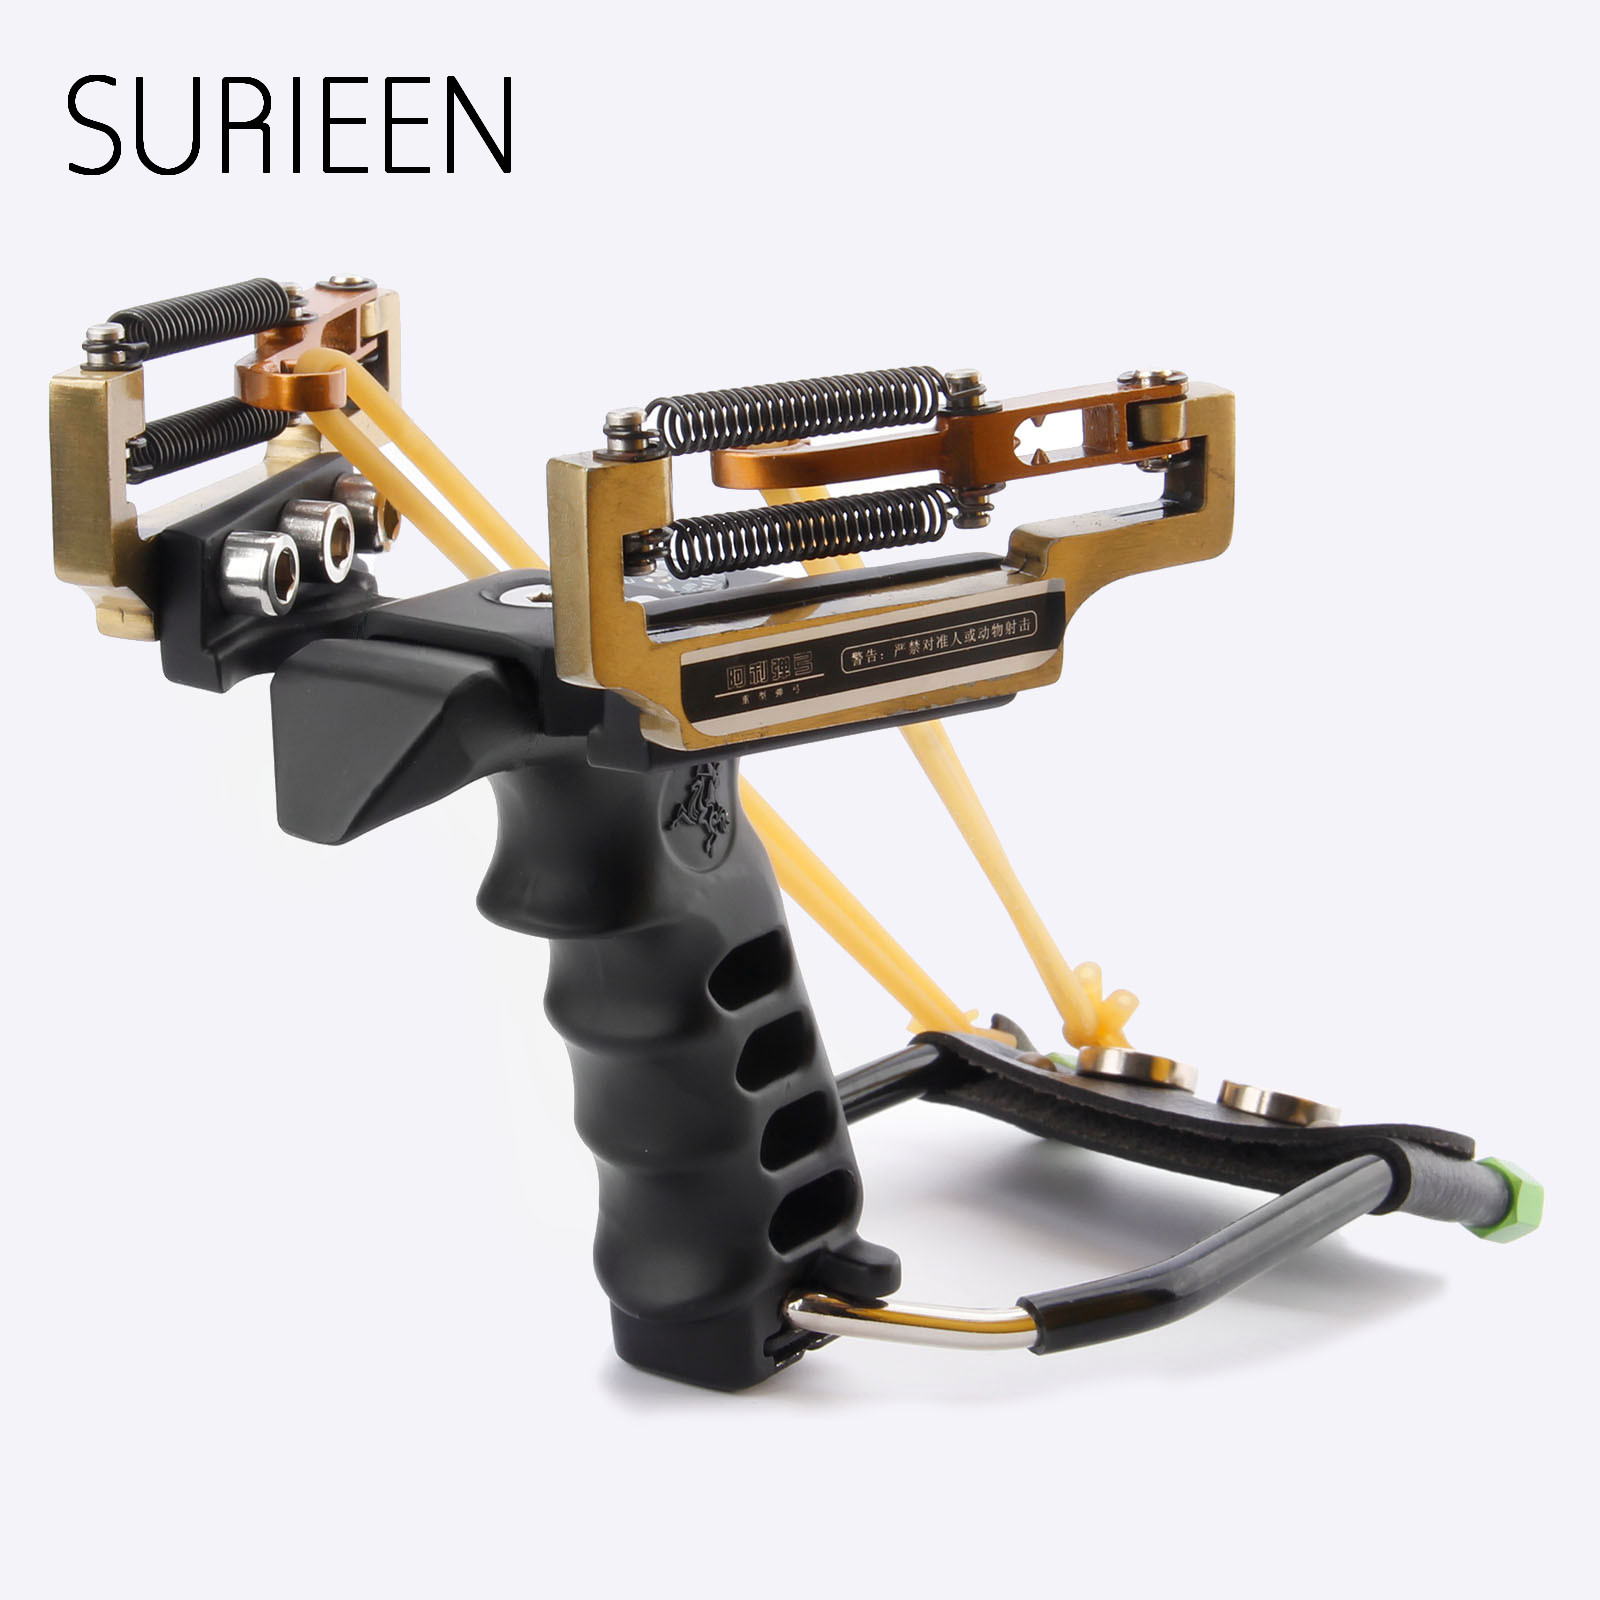 SURIEEN Metal Sling Shot Shots Outdoor Slingshots Strong Powerful Catapult +Rubber Bands +Wrench+Steel Balls Hunting Estilingue judge g5 slingshot hunting powerful catapult camouflage stainless steel hunter aluminium alloy sling shot with clamp and laser